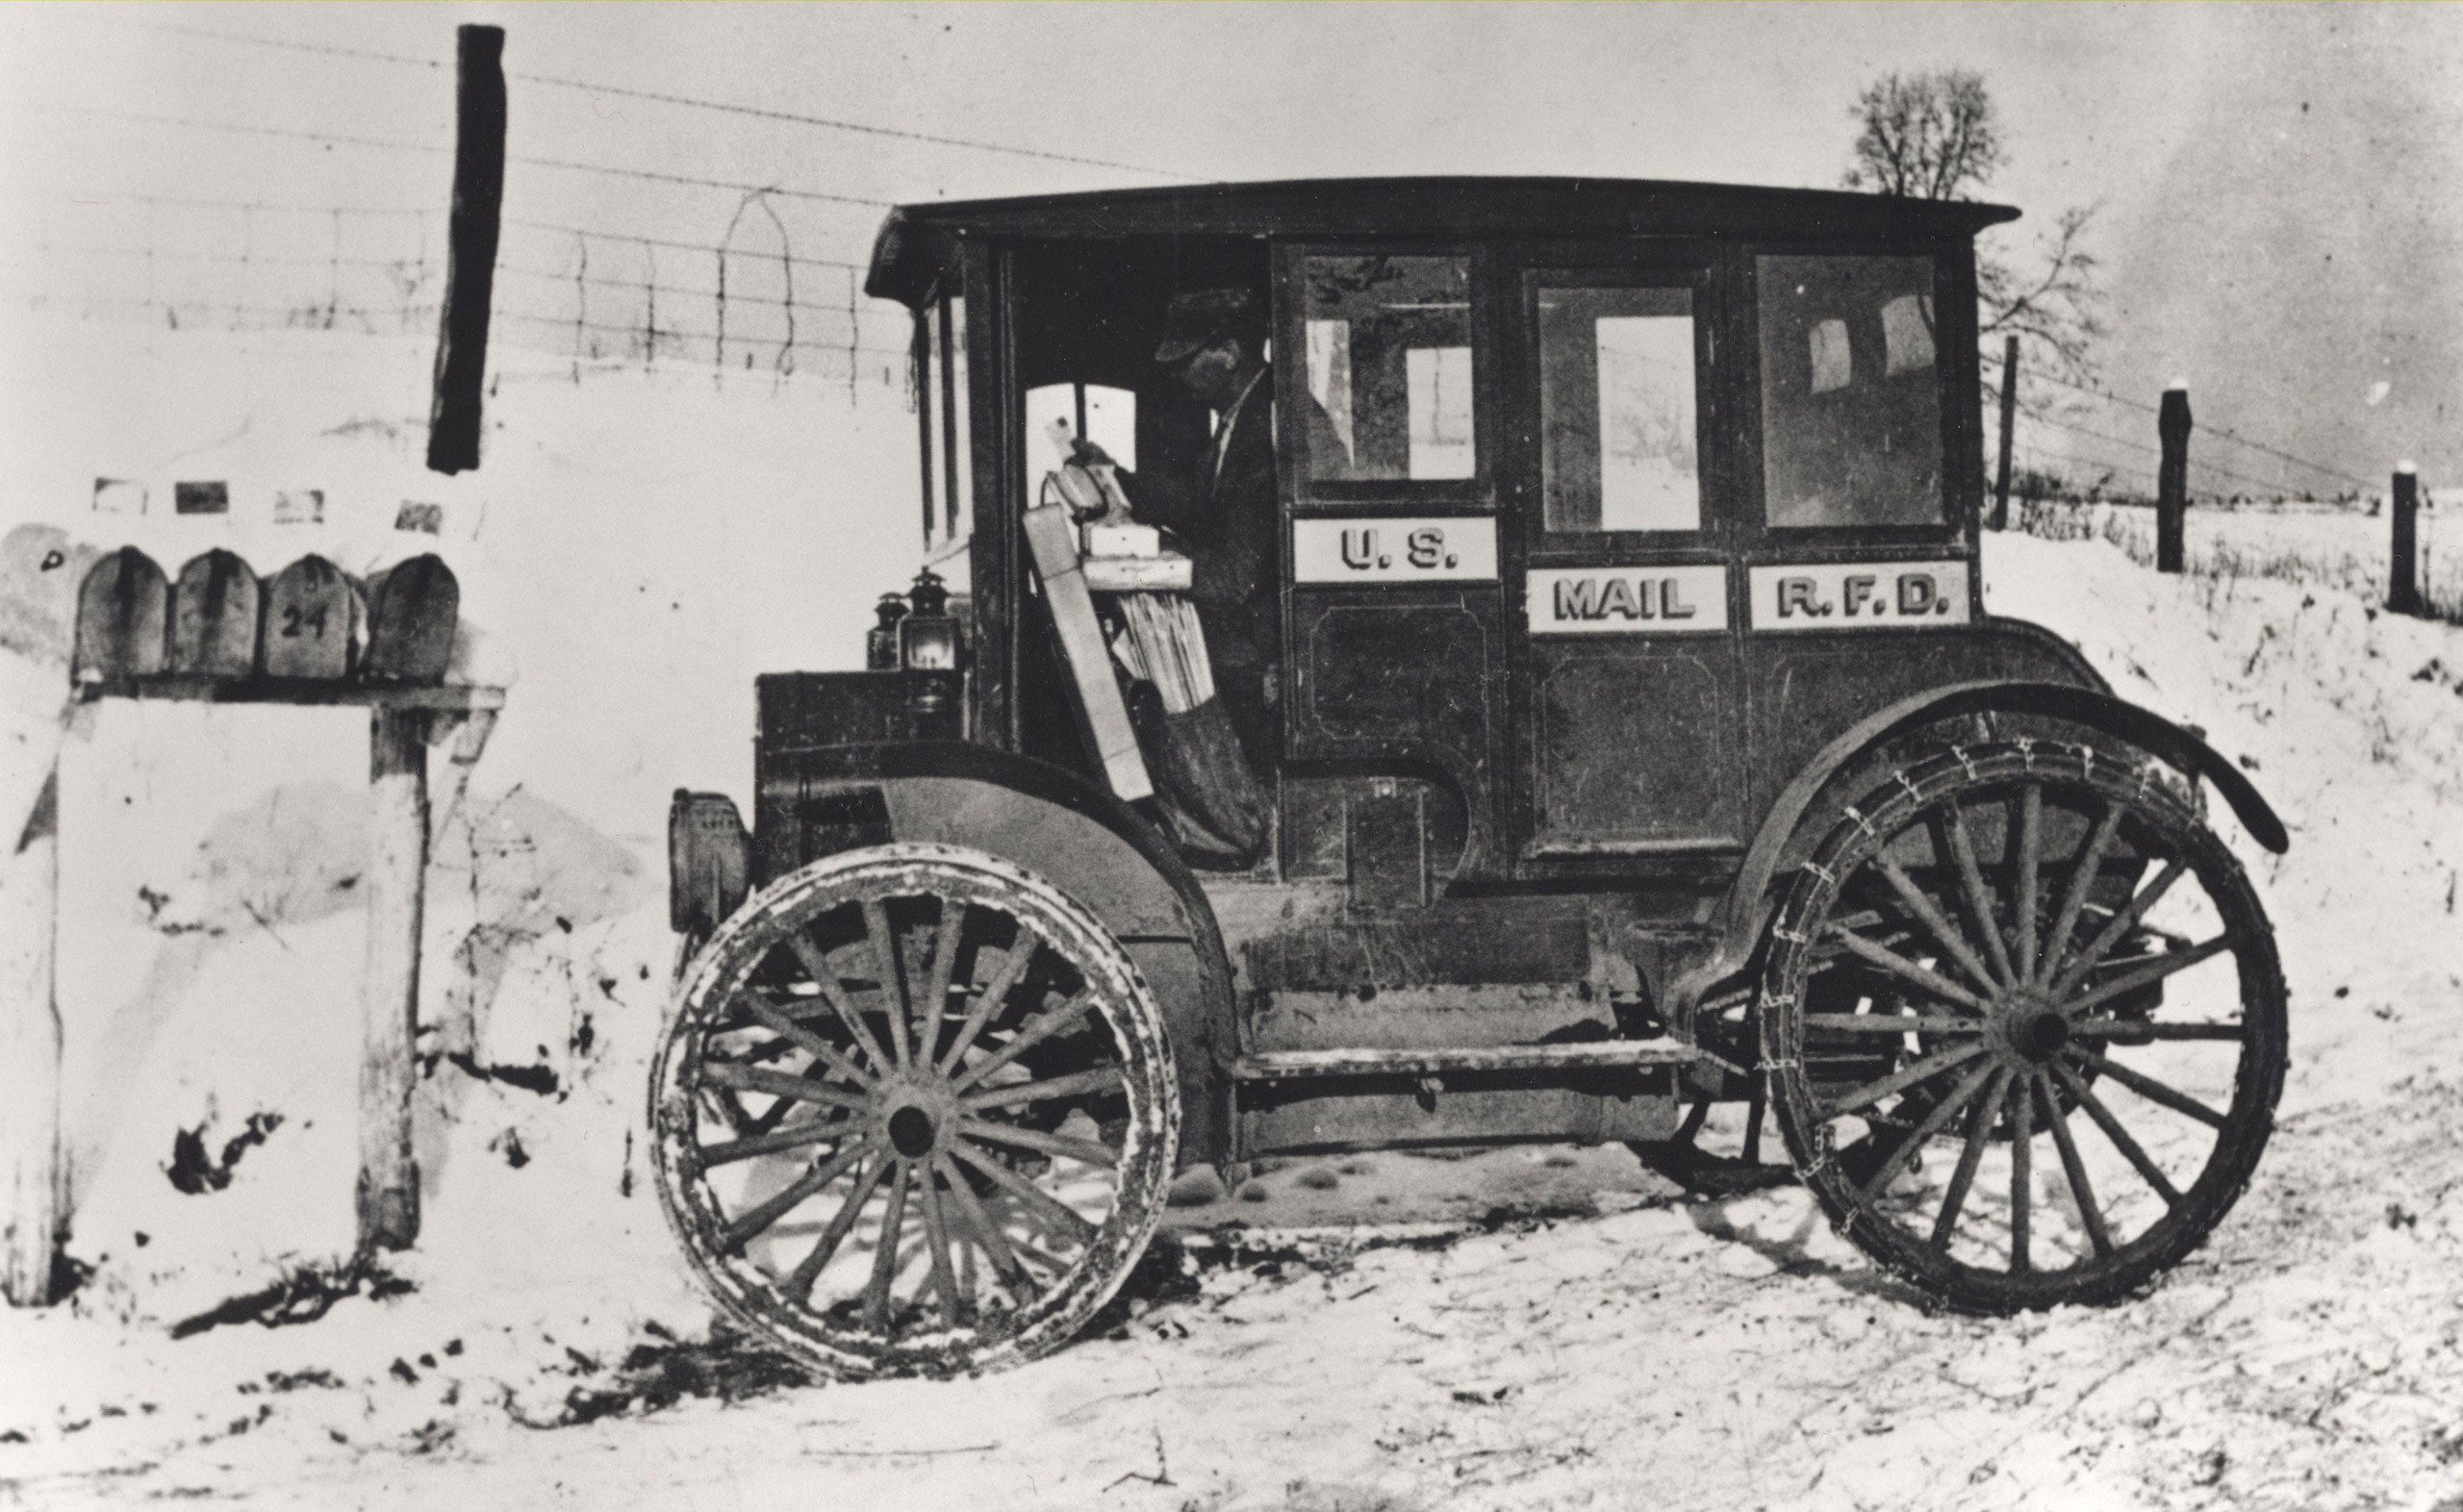 Postal officials encouraged Rural Free Delivery (RFD) carriers to replace their horses and wagons with electric-motored vehicles,  but this 1910 postal worker was surely only able to complete his wintertime rounds thanks to a snow-plowed road. Automobiles were not yet adequate replacements for horses and sleds on rural roads.